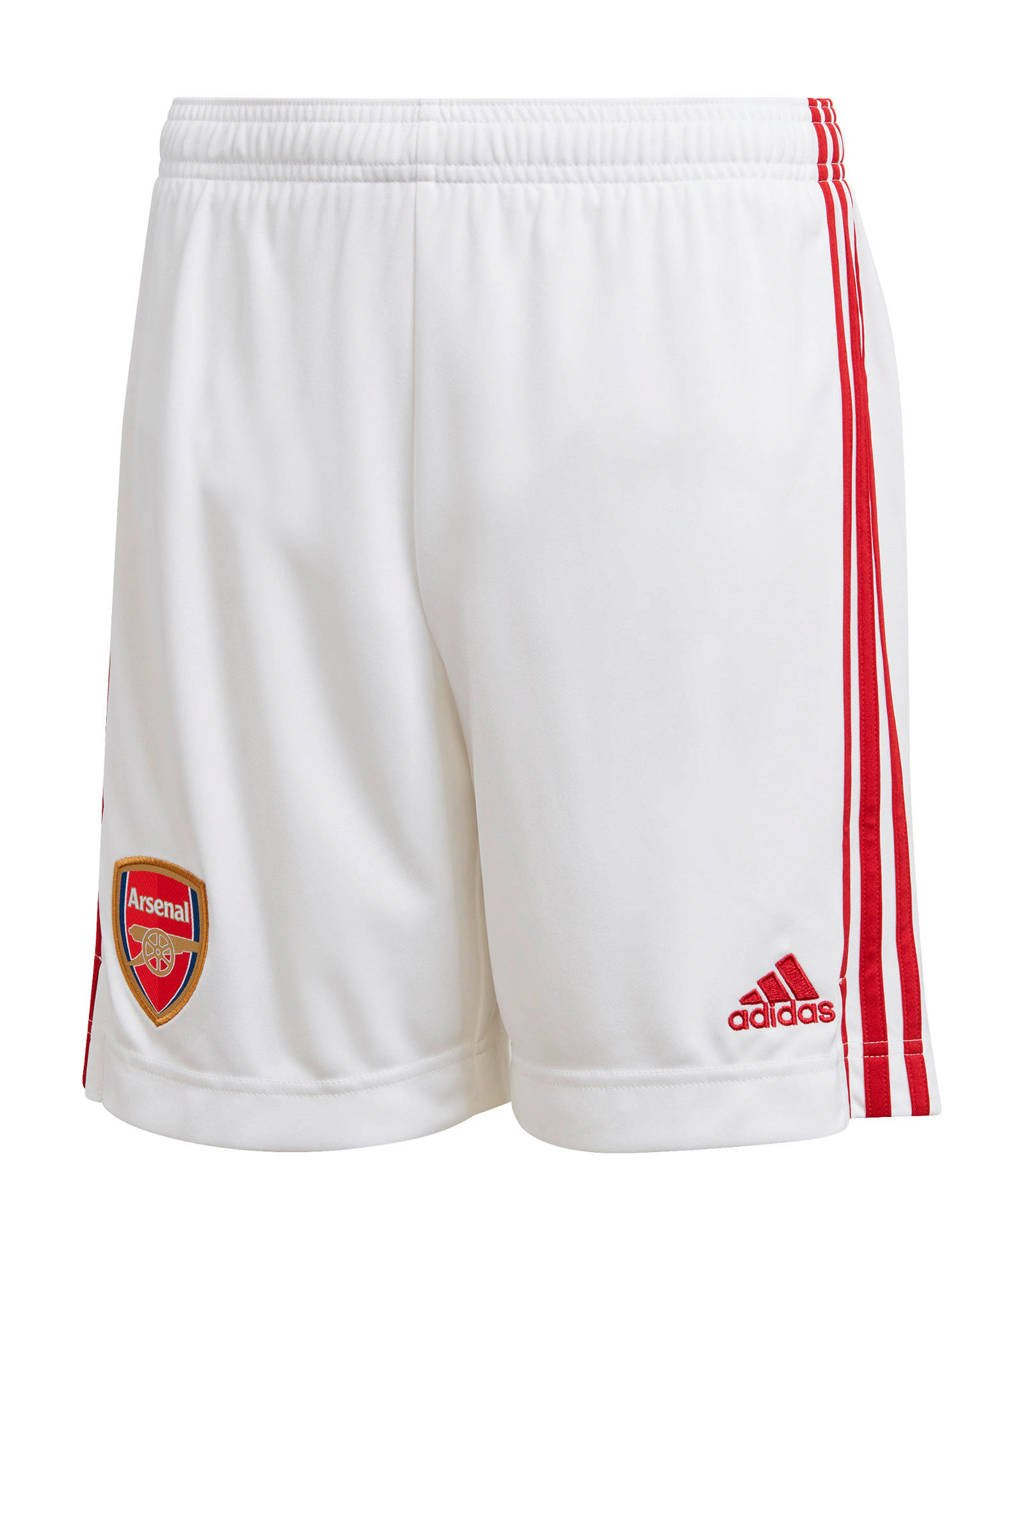 adidas Performance Junior Arsenal FC voetbalshort, Wit/rood